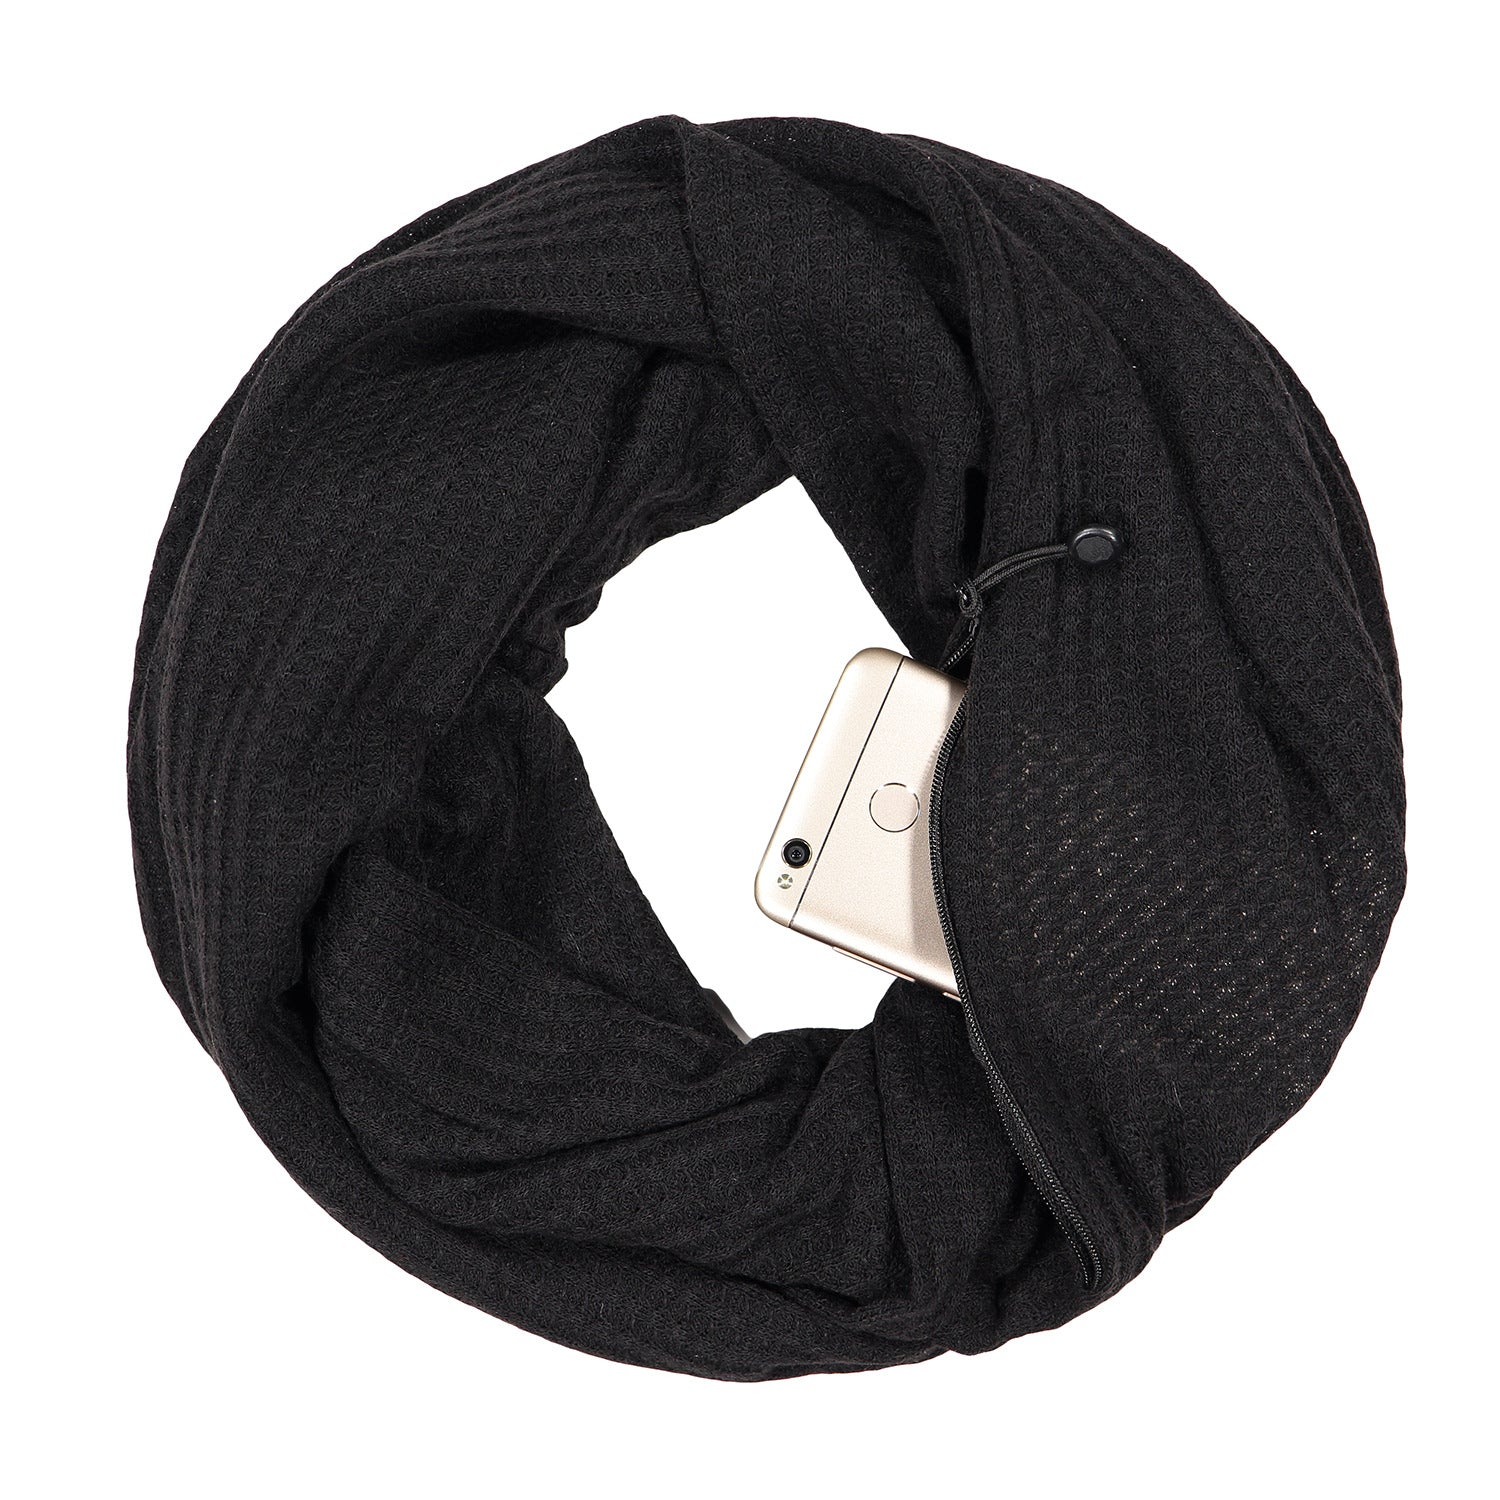 Pop Fashion Warmin-Up Hidden Pocket Scarf - Lightweight Infinity Scarves with Zipper Pockets - Pop Fashion